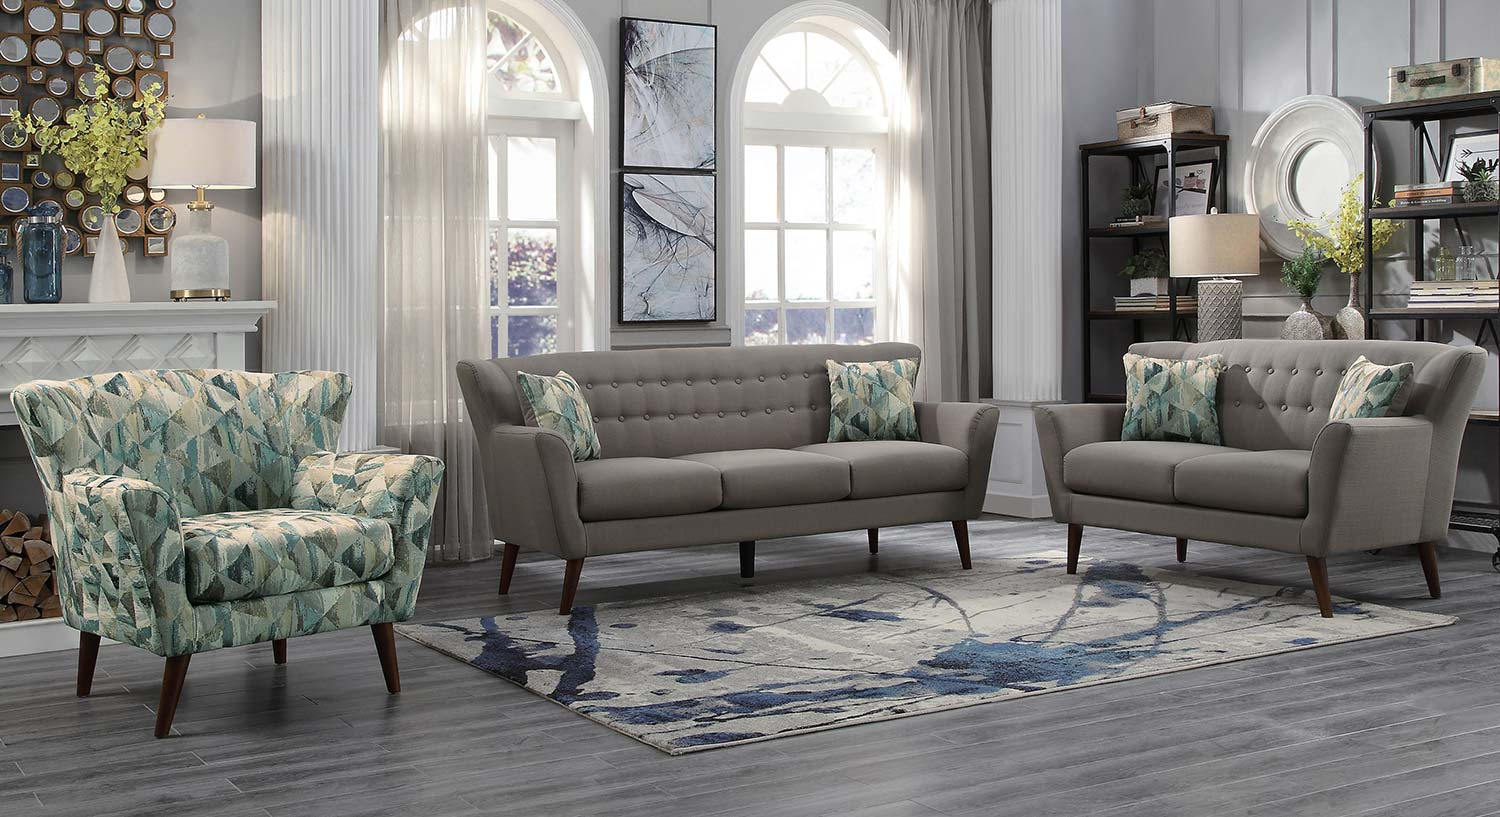 Homelegance Maja Sofa Set - Gray